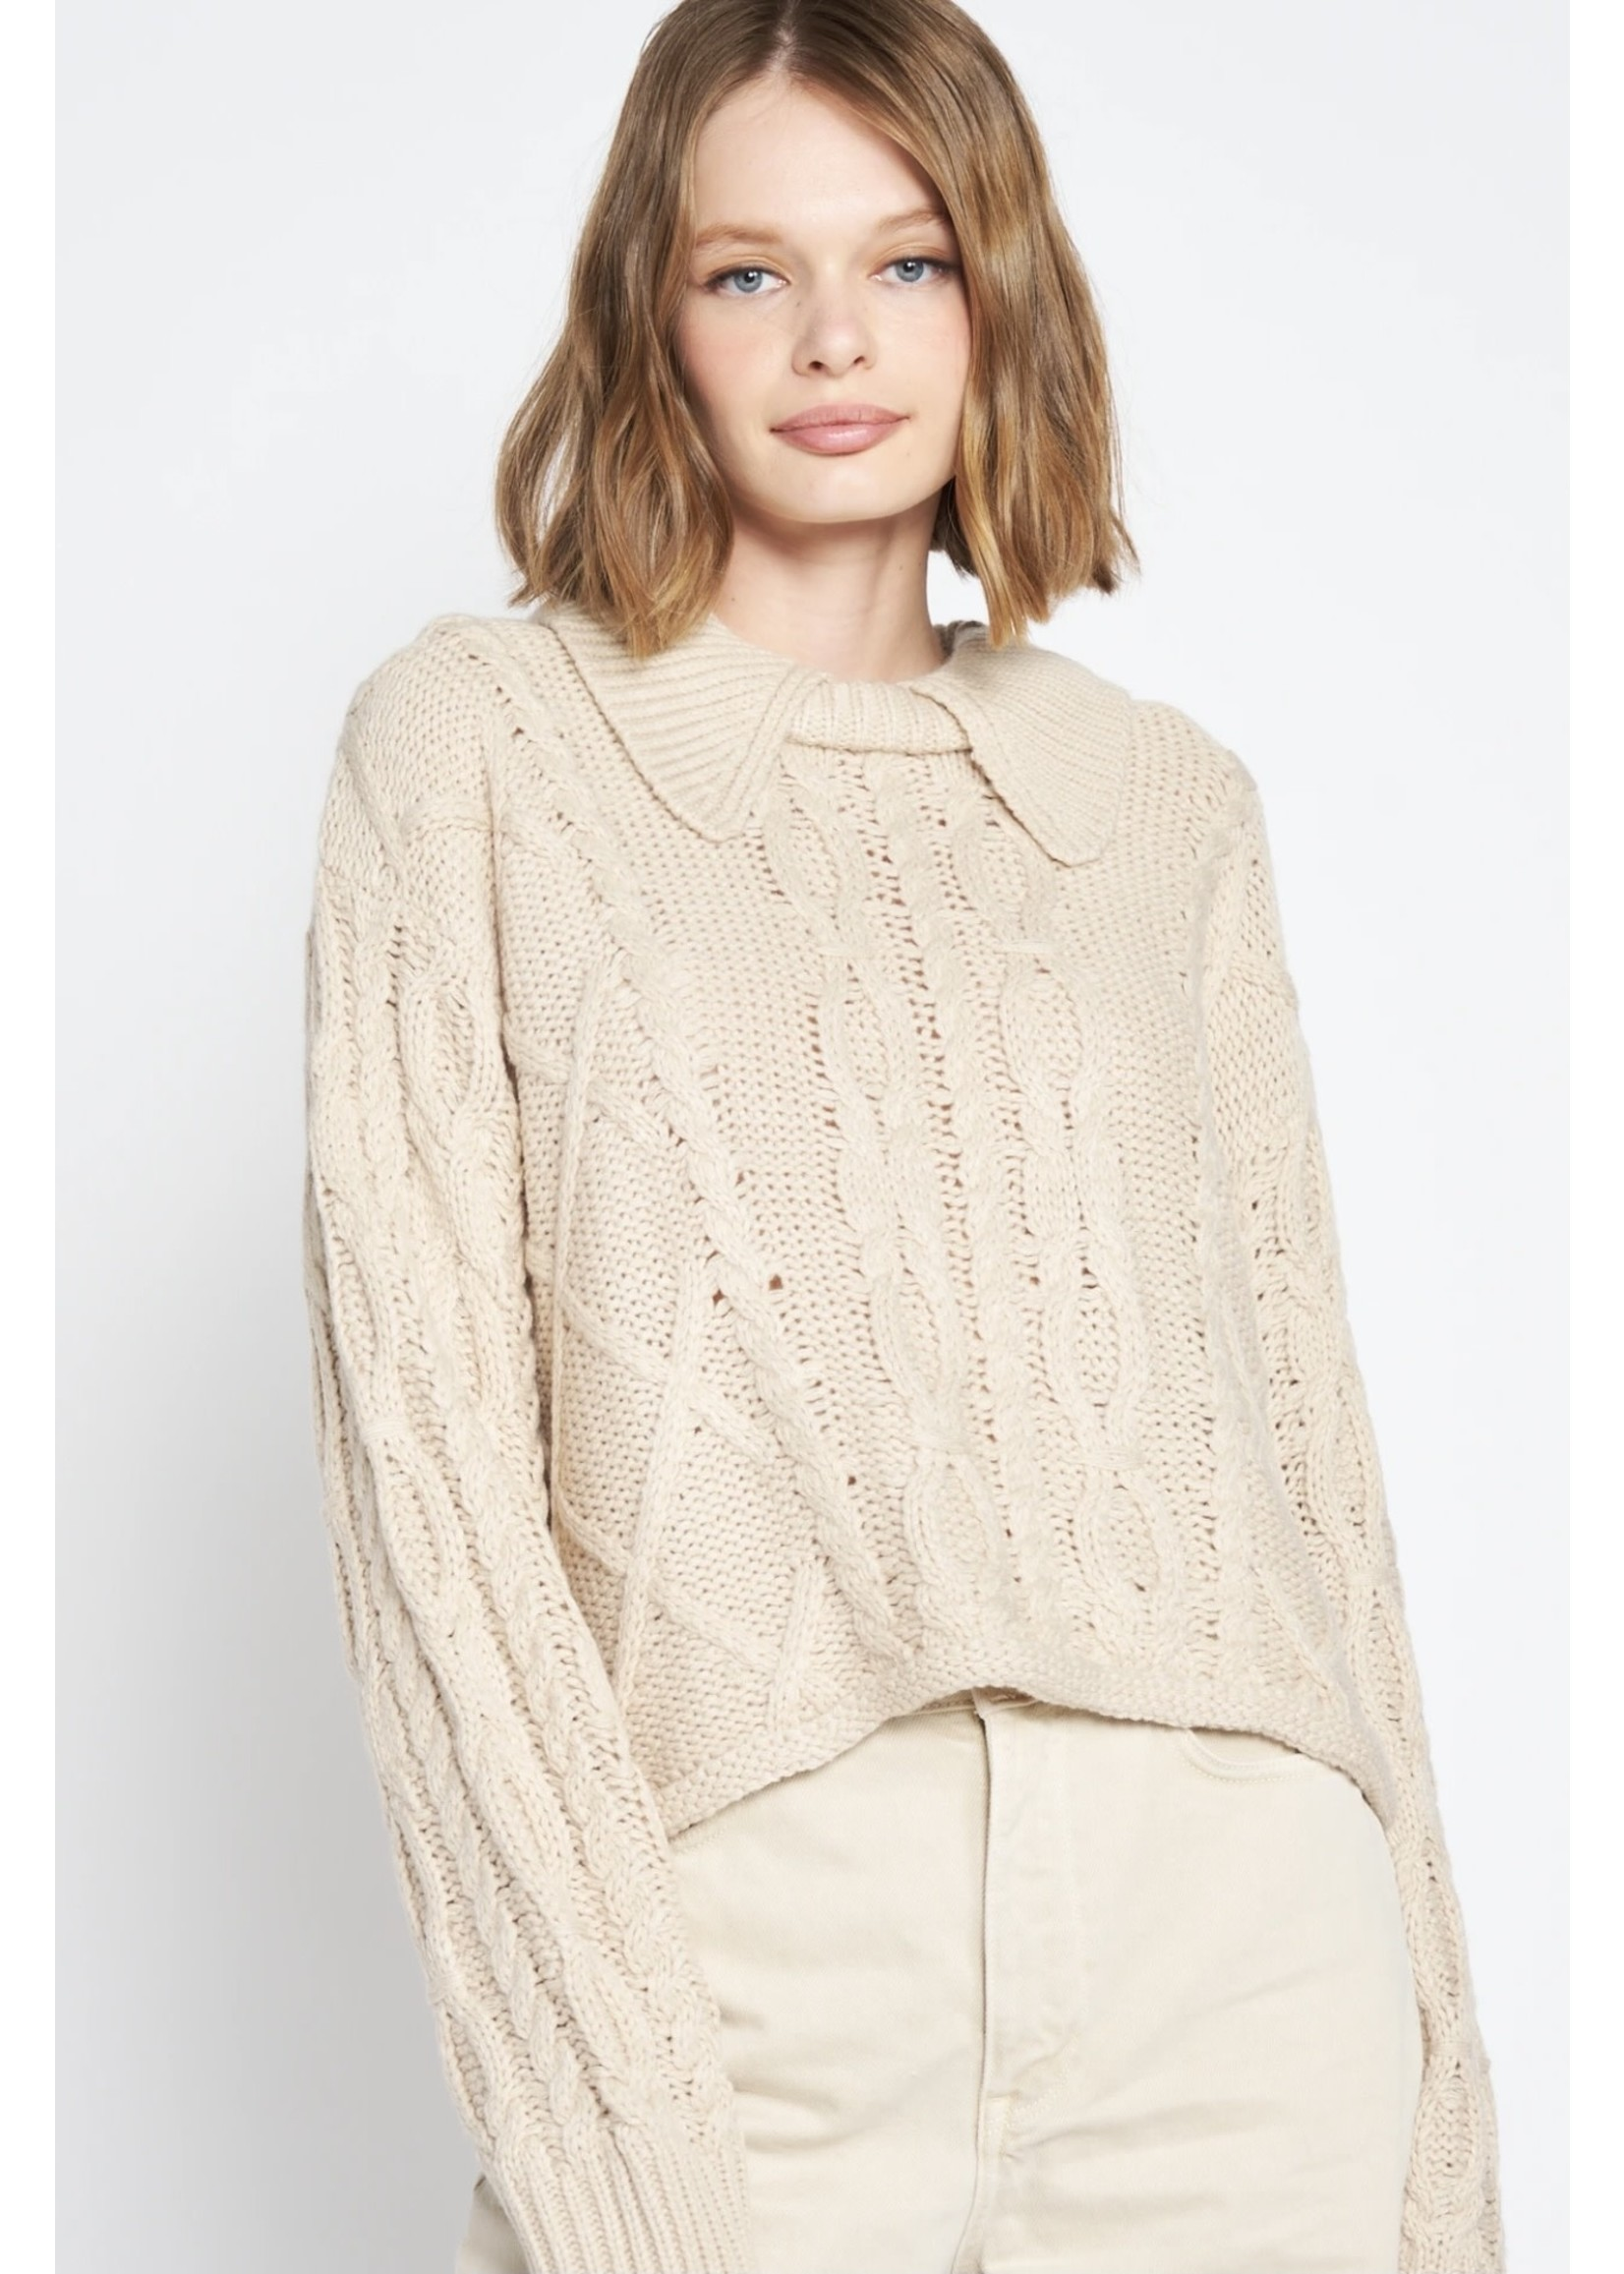 En Saison Chunky Knit Collared Pullover Sweater - IES2078T